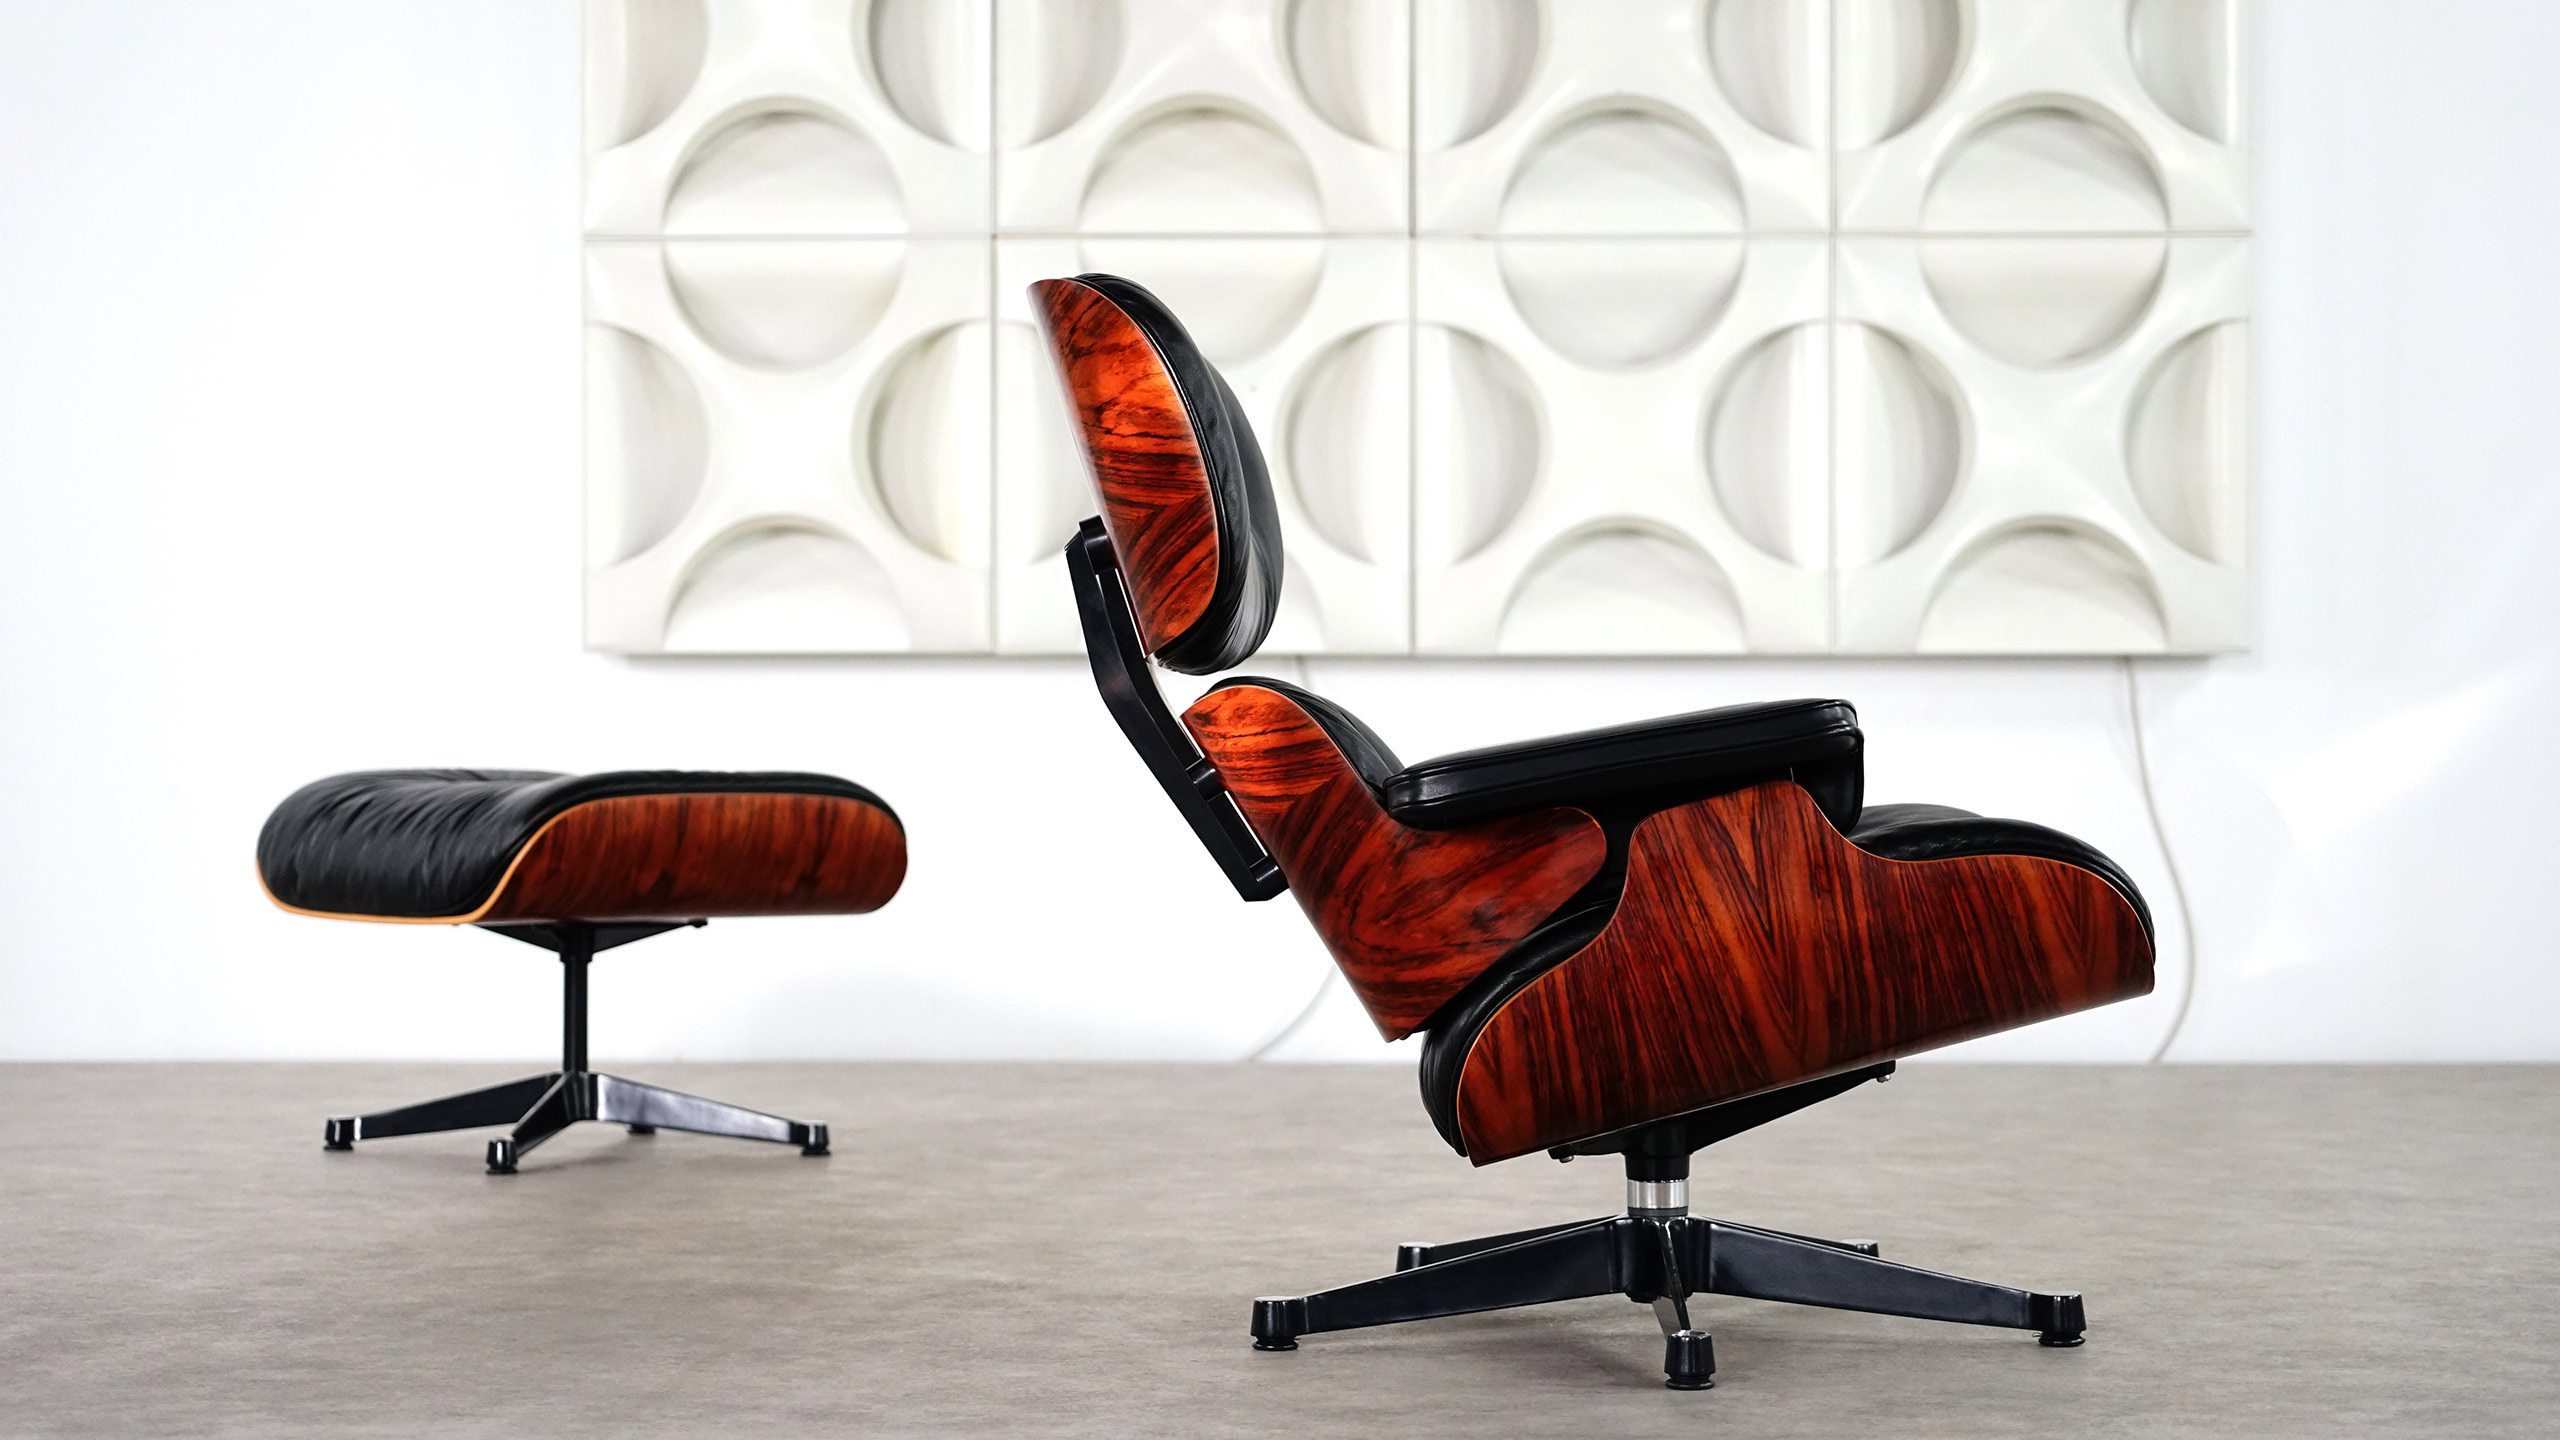 Eames Vitra Lounge Chair charles eames lounge chair ottoman by vitra